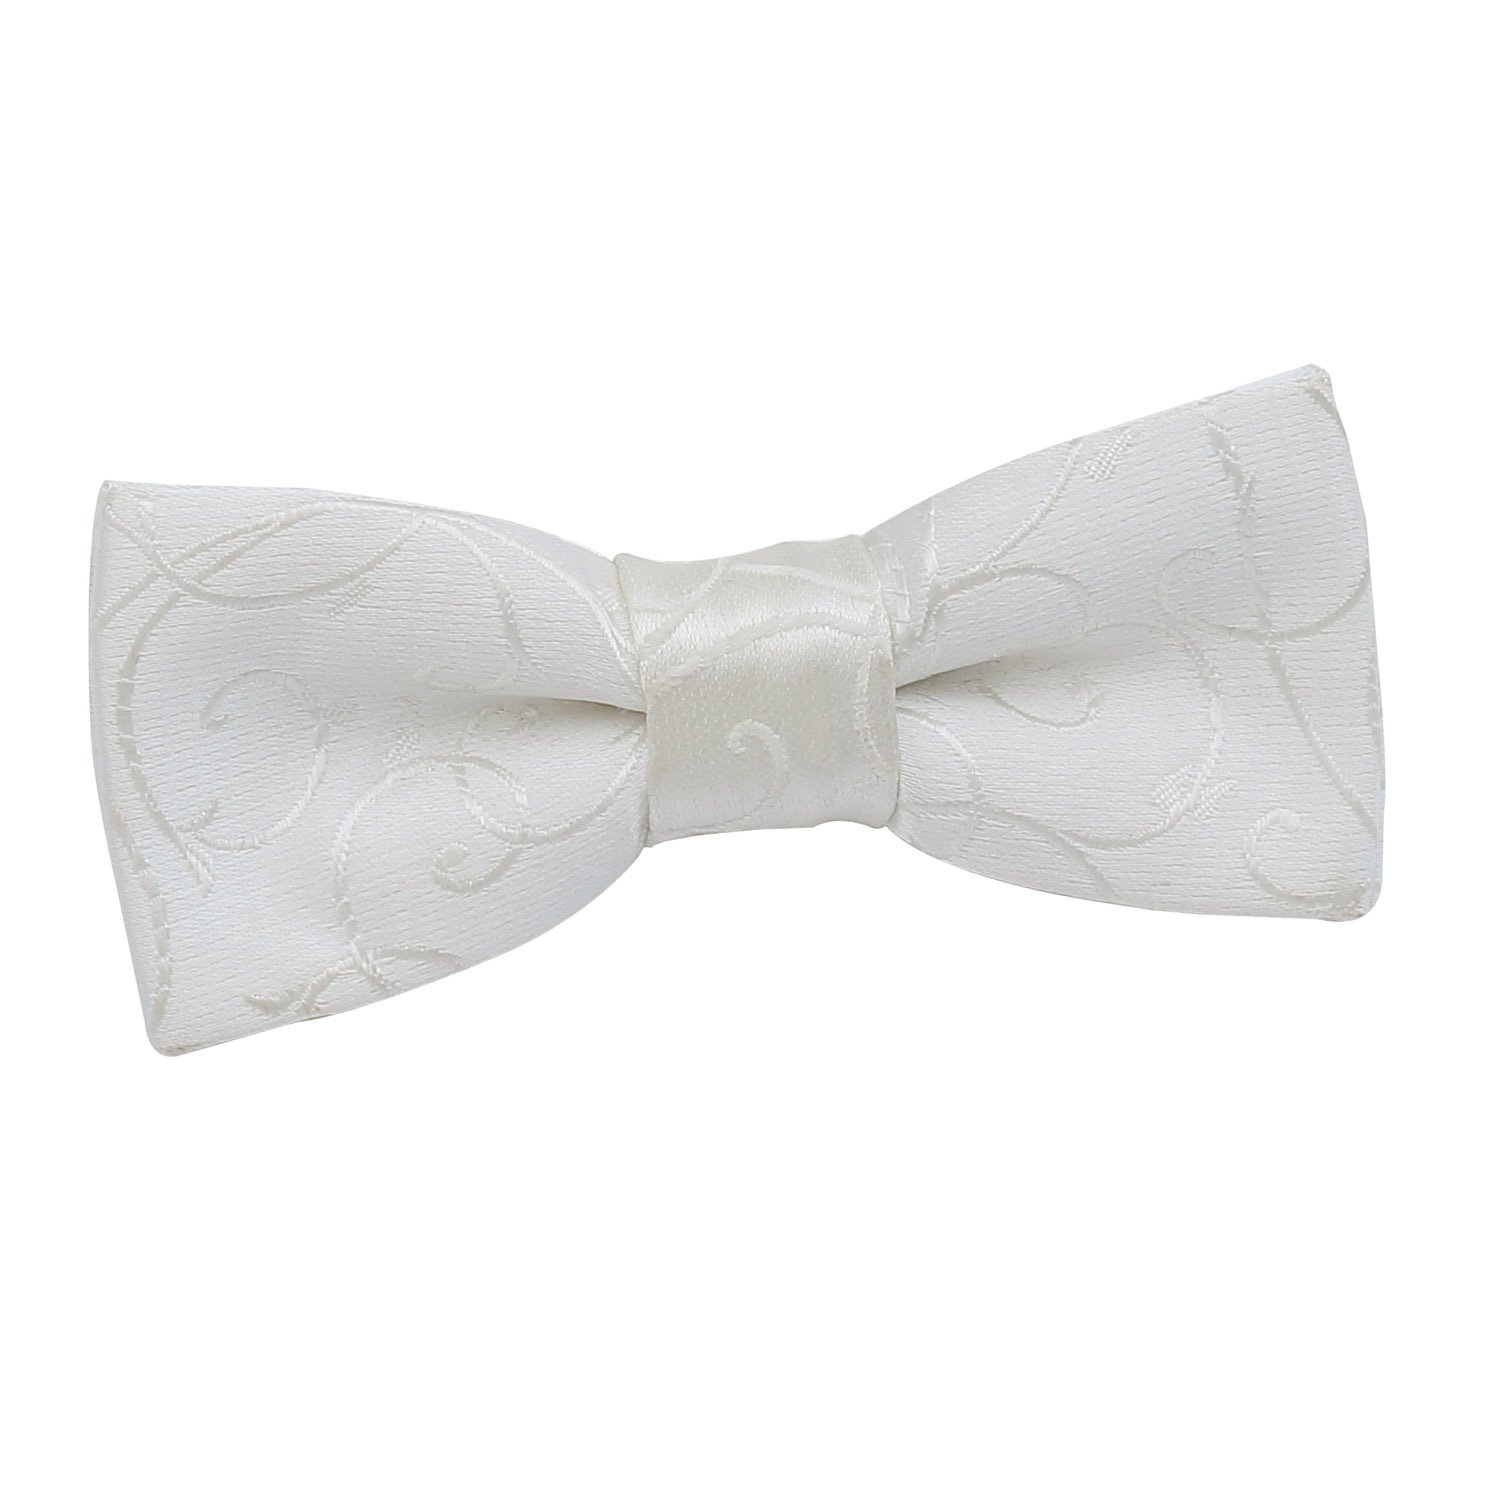 DQT Boys Swirl Patterned Wedding Suit Formal Tuxedo Casual Page Boy Adjustable Pre-Tied Bow Tie